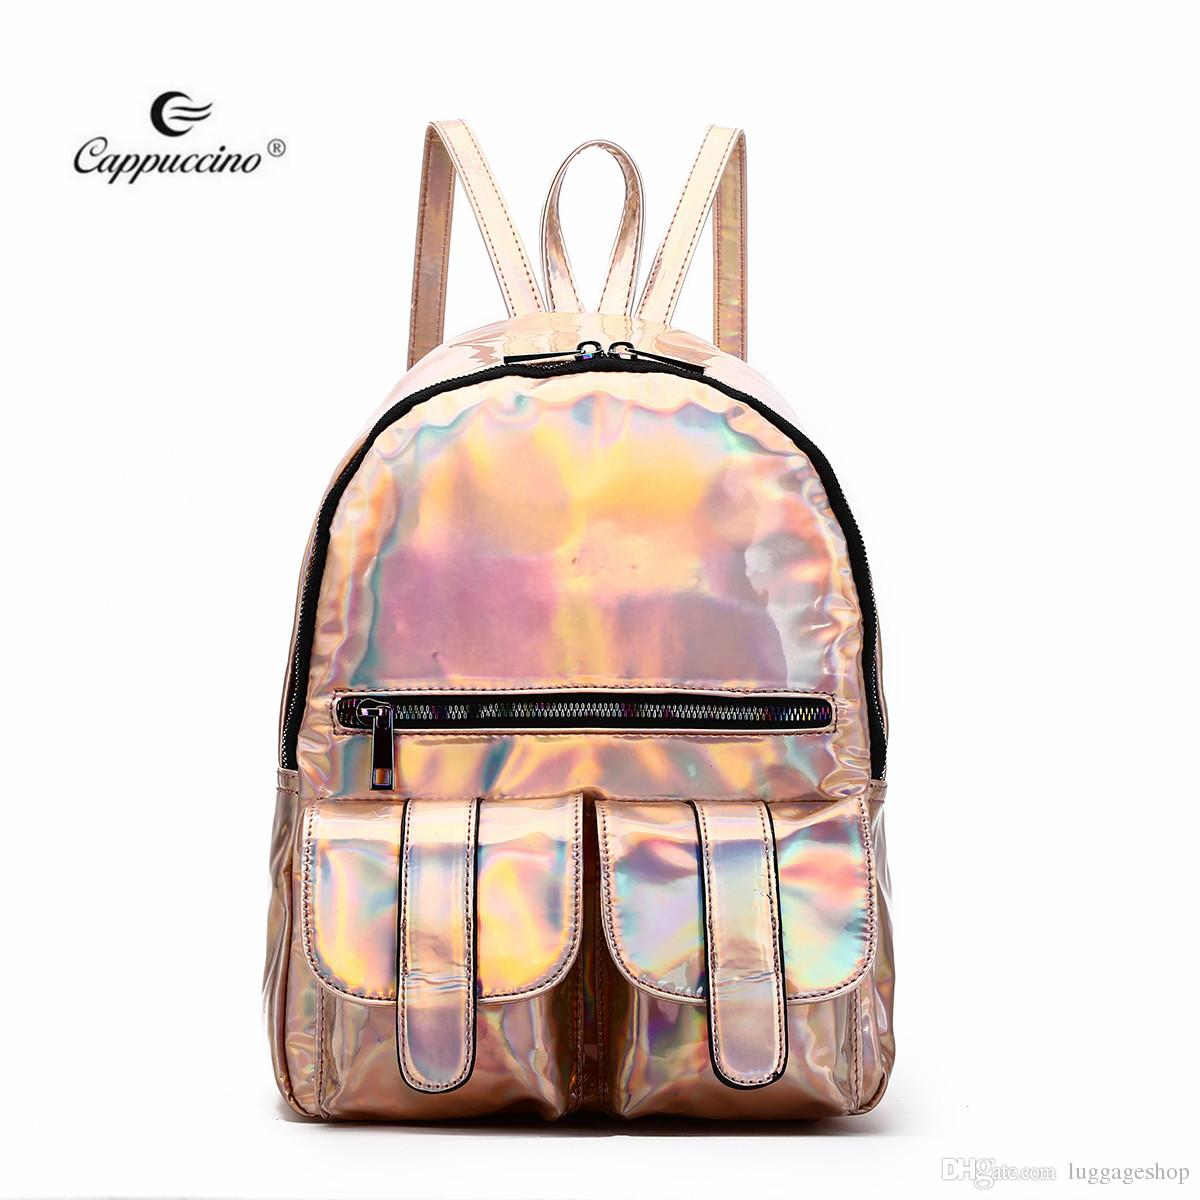 9105fc4929 2019 new trendy bag Cappuccino new products Hologram Dual Pocket Backpack  with Rainbow Zipper